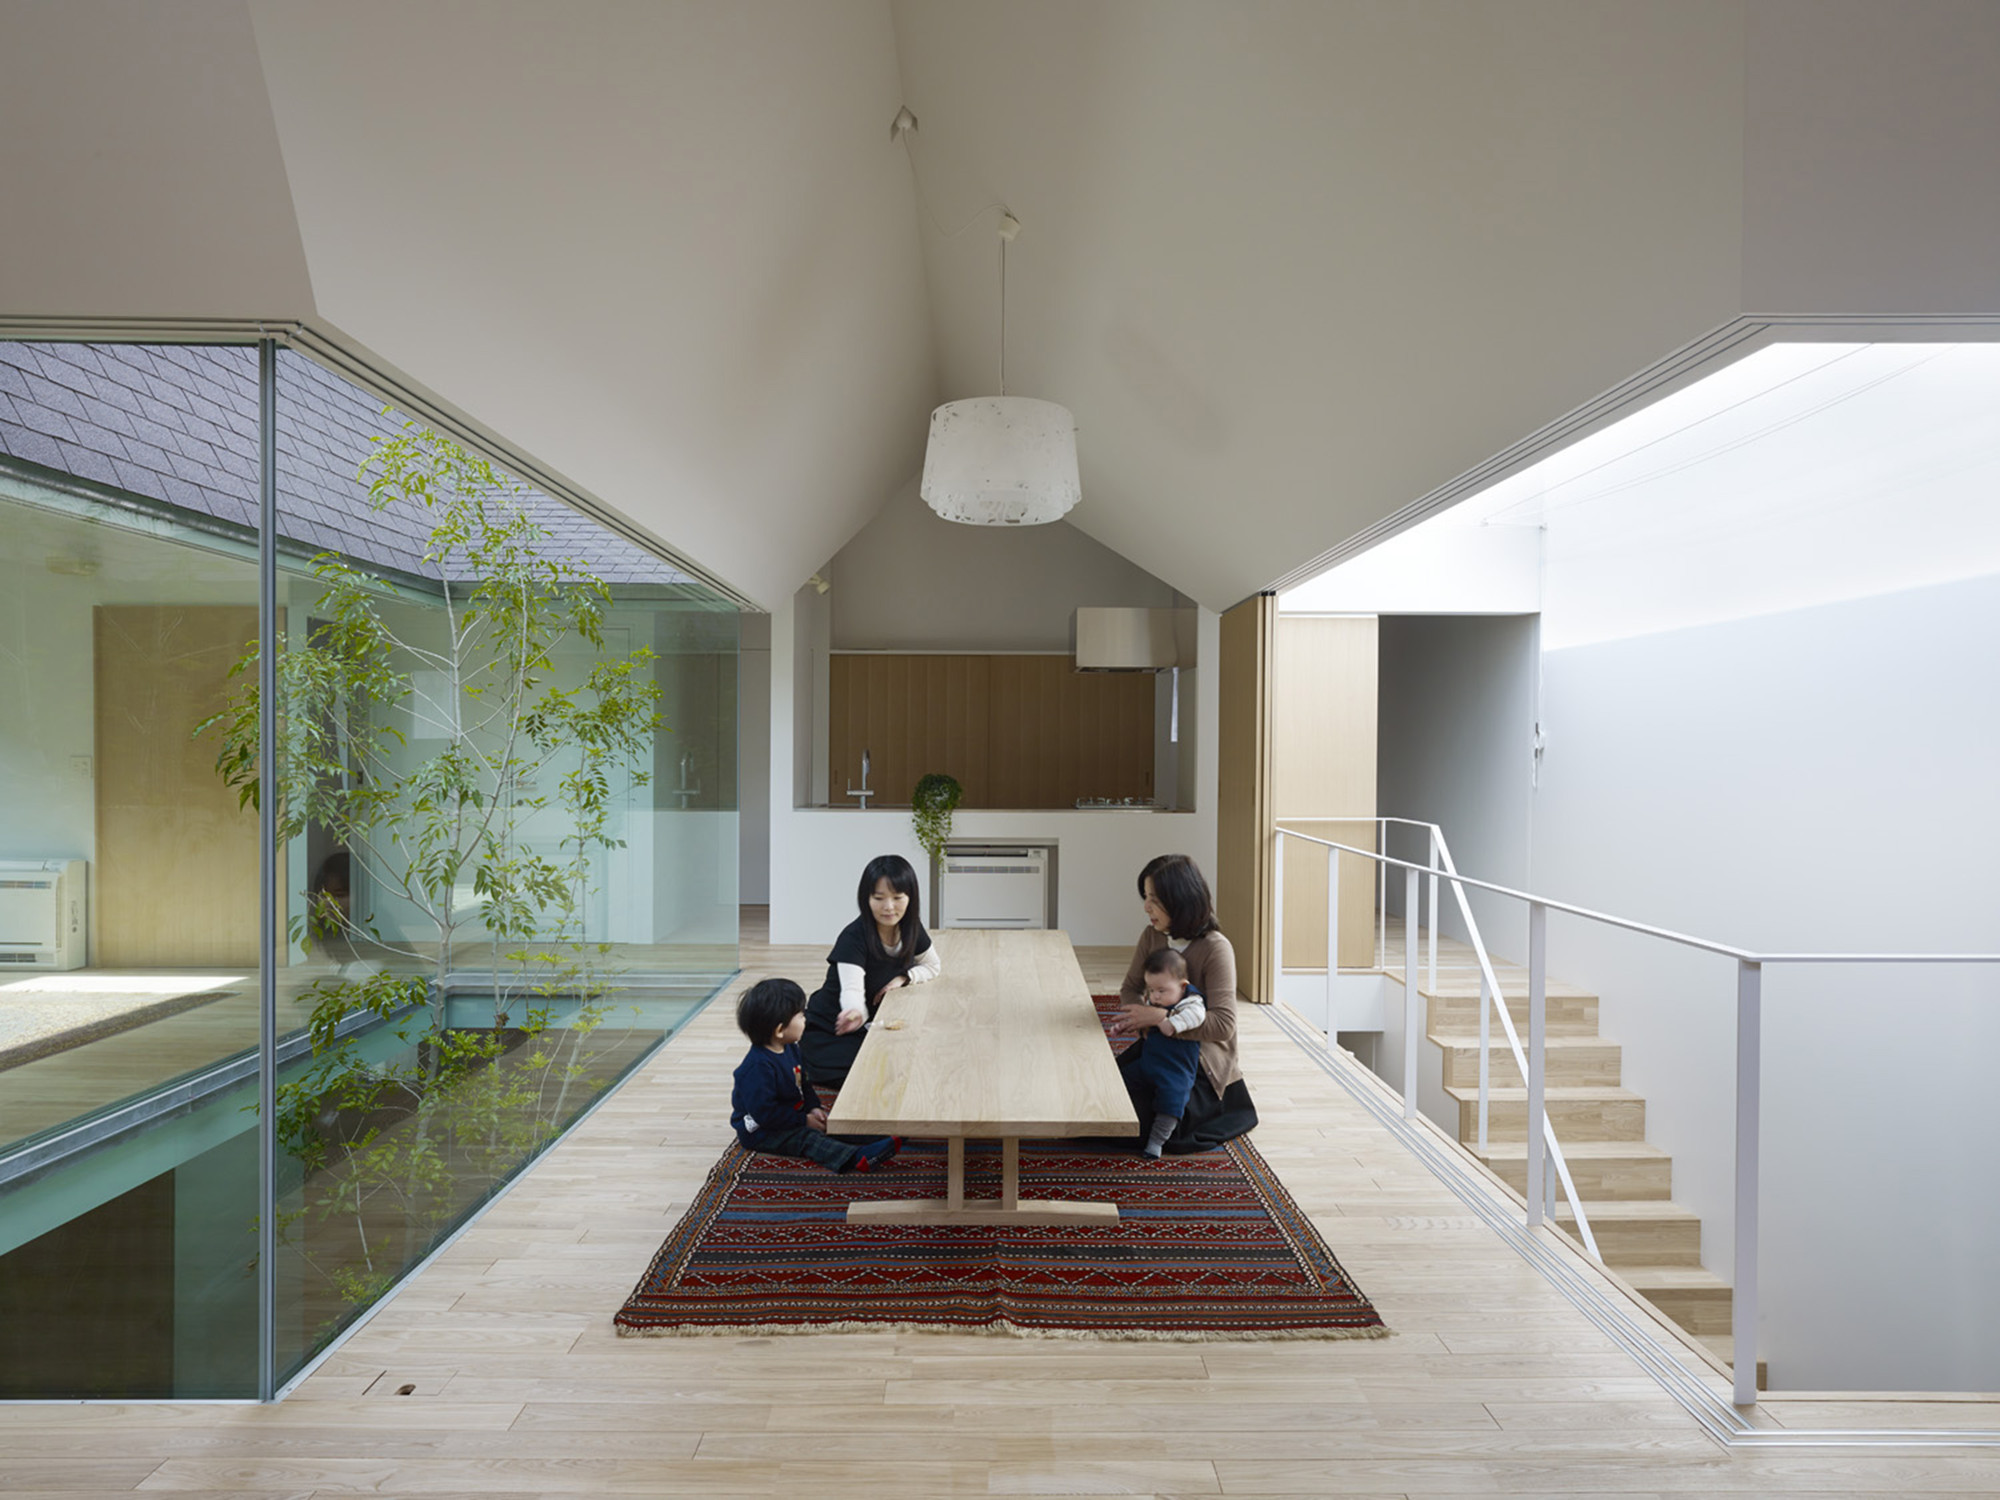 Atlas house  / Tomohiro Hata Architect and Associates, © Toshiyuki Yano